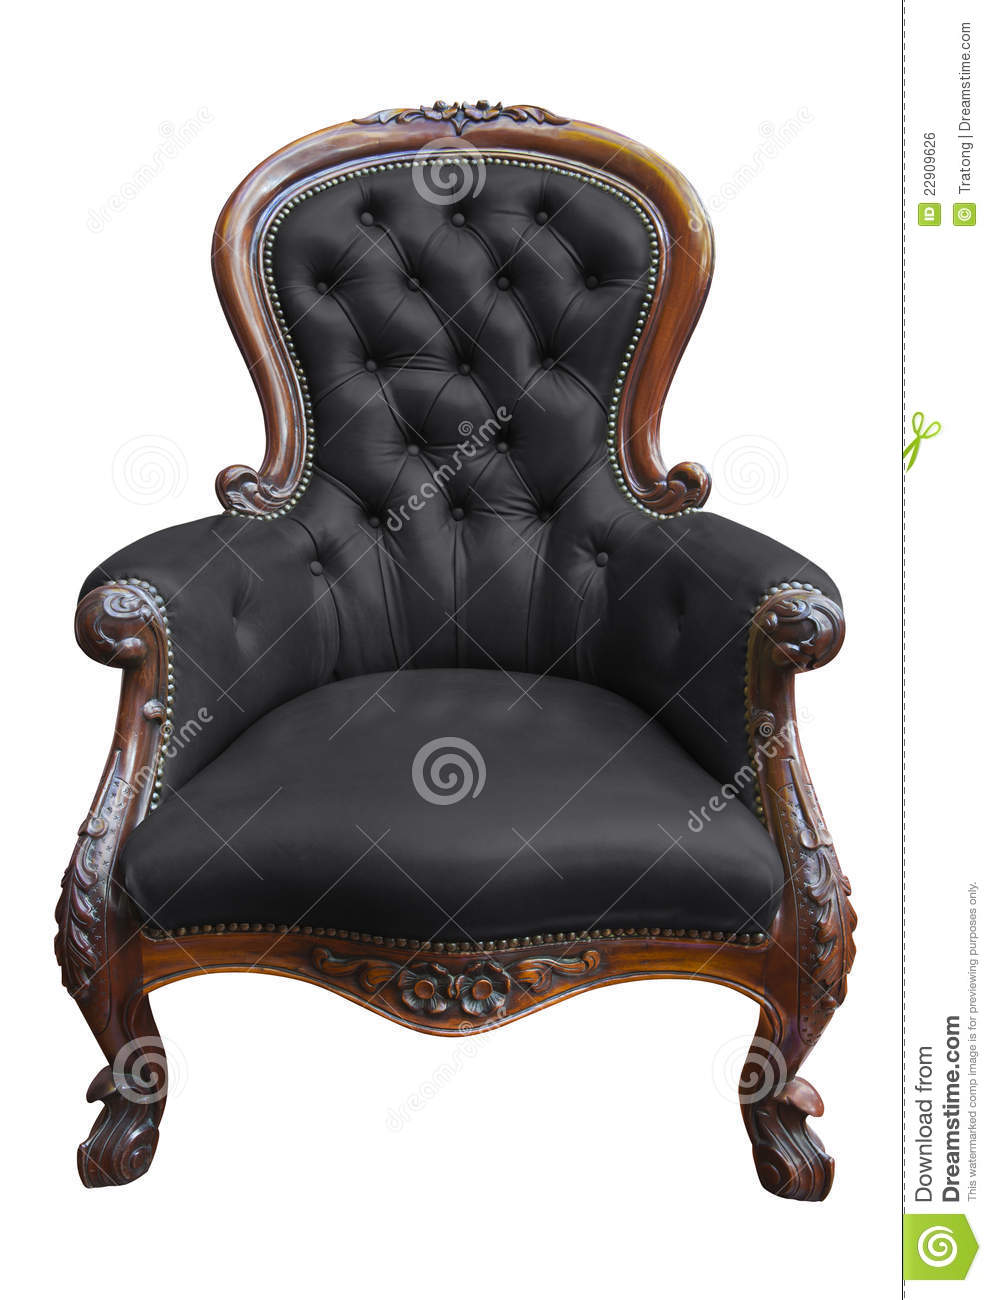 Antique black leather chair - Vintage Black Leather Armchair With Clipping Path